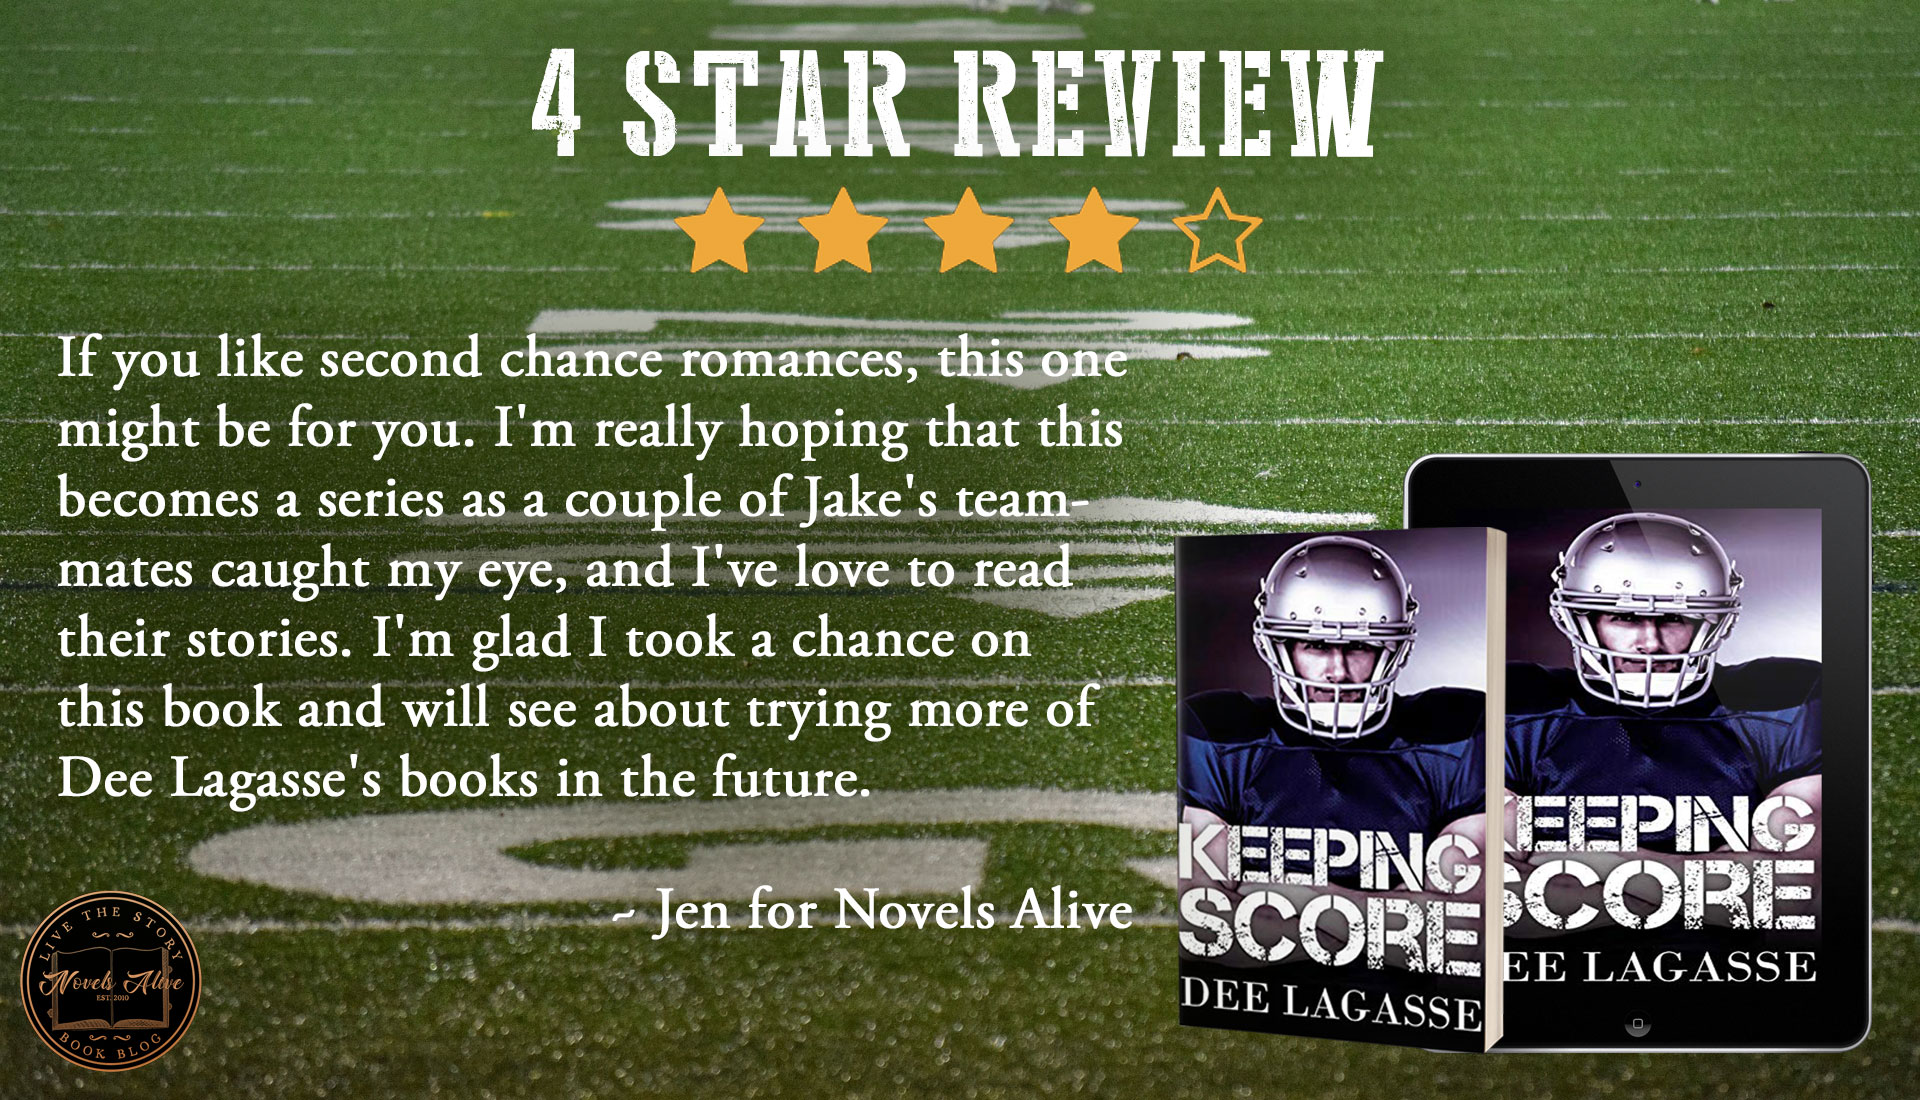 Keeping-Score-Review-FB